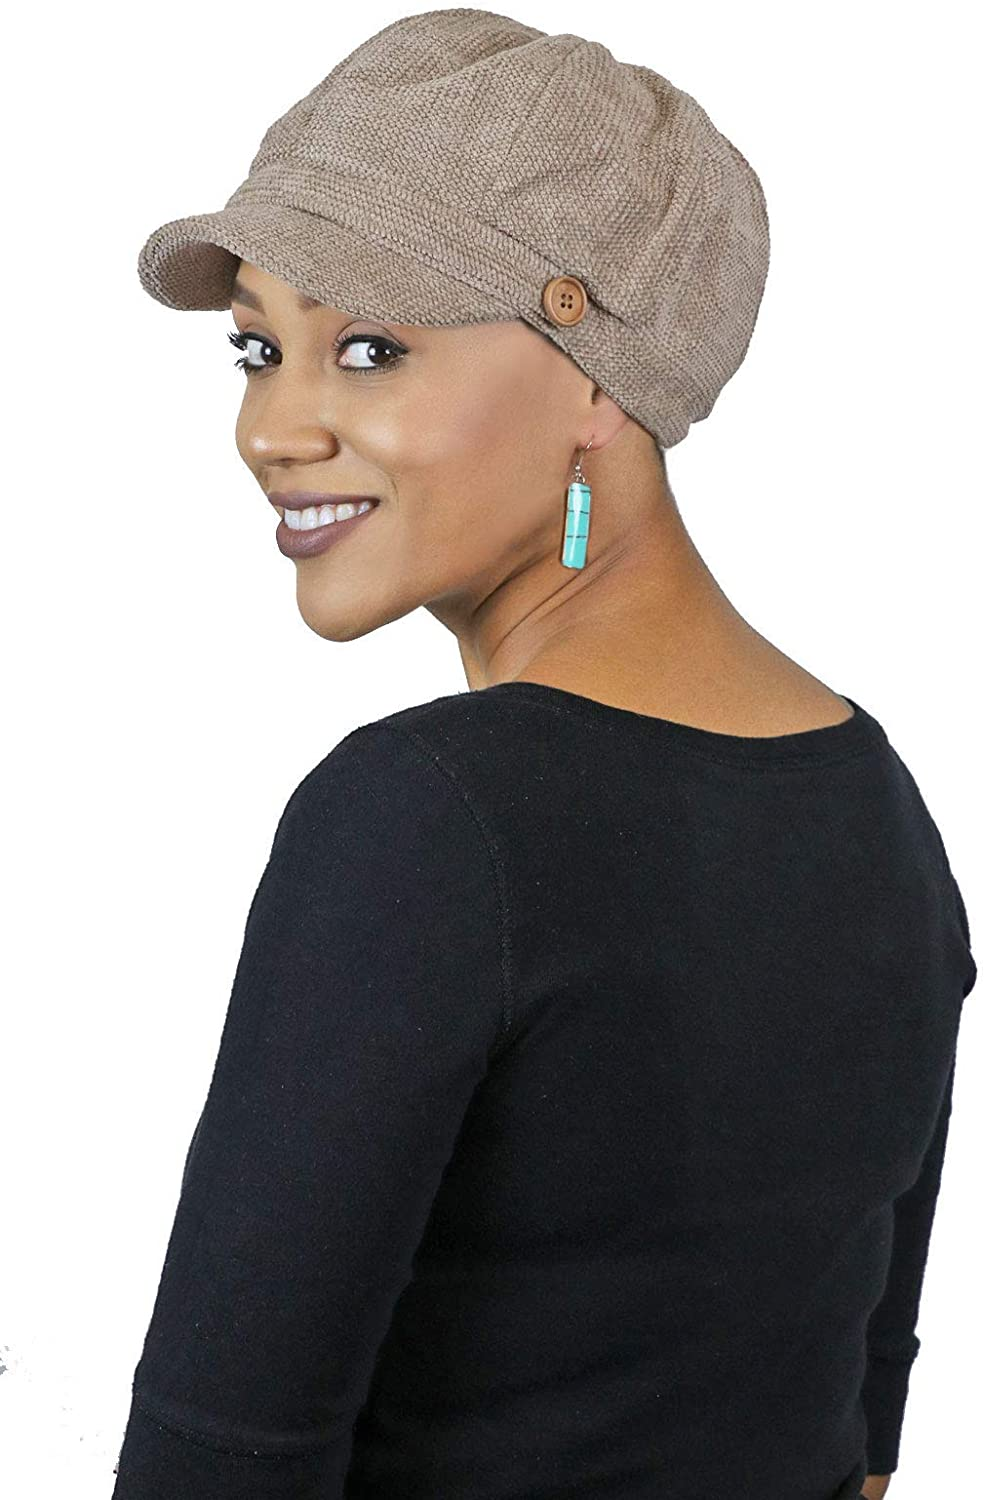 Newsboy Cap for Women Cancer Latest item Headwear Head Chemo Large special price Cove Ladies Hat